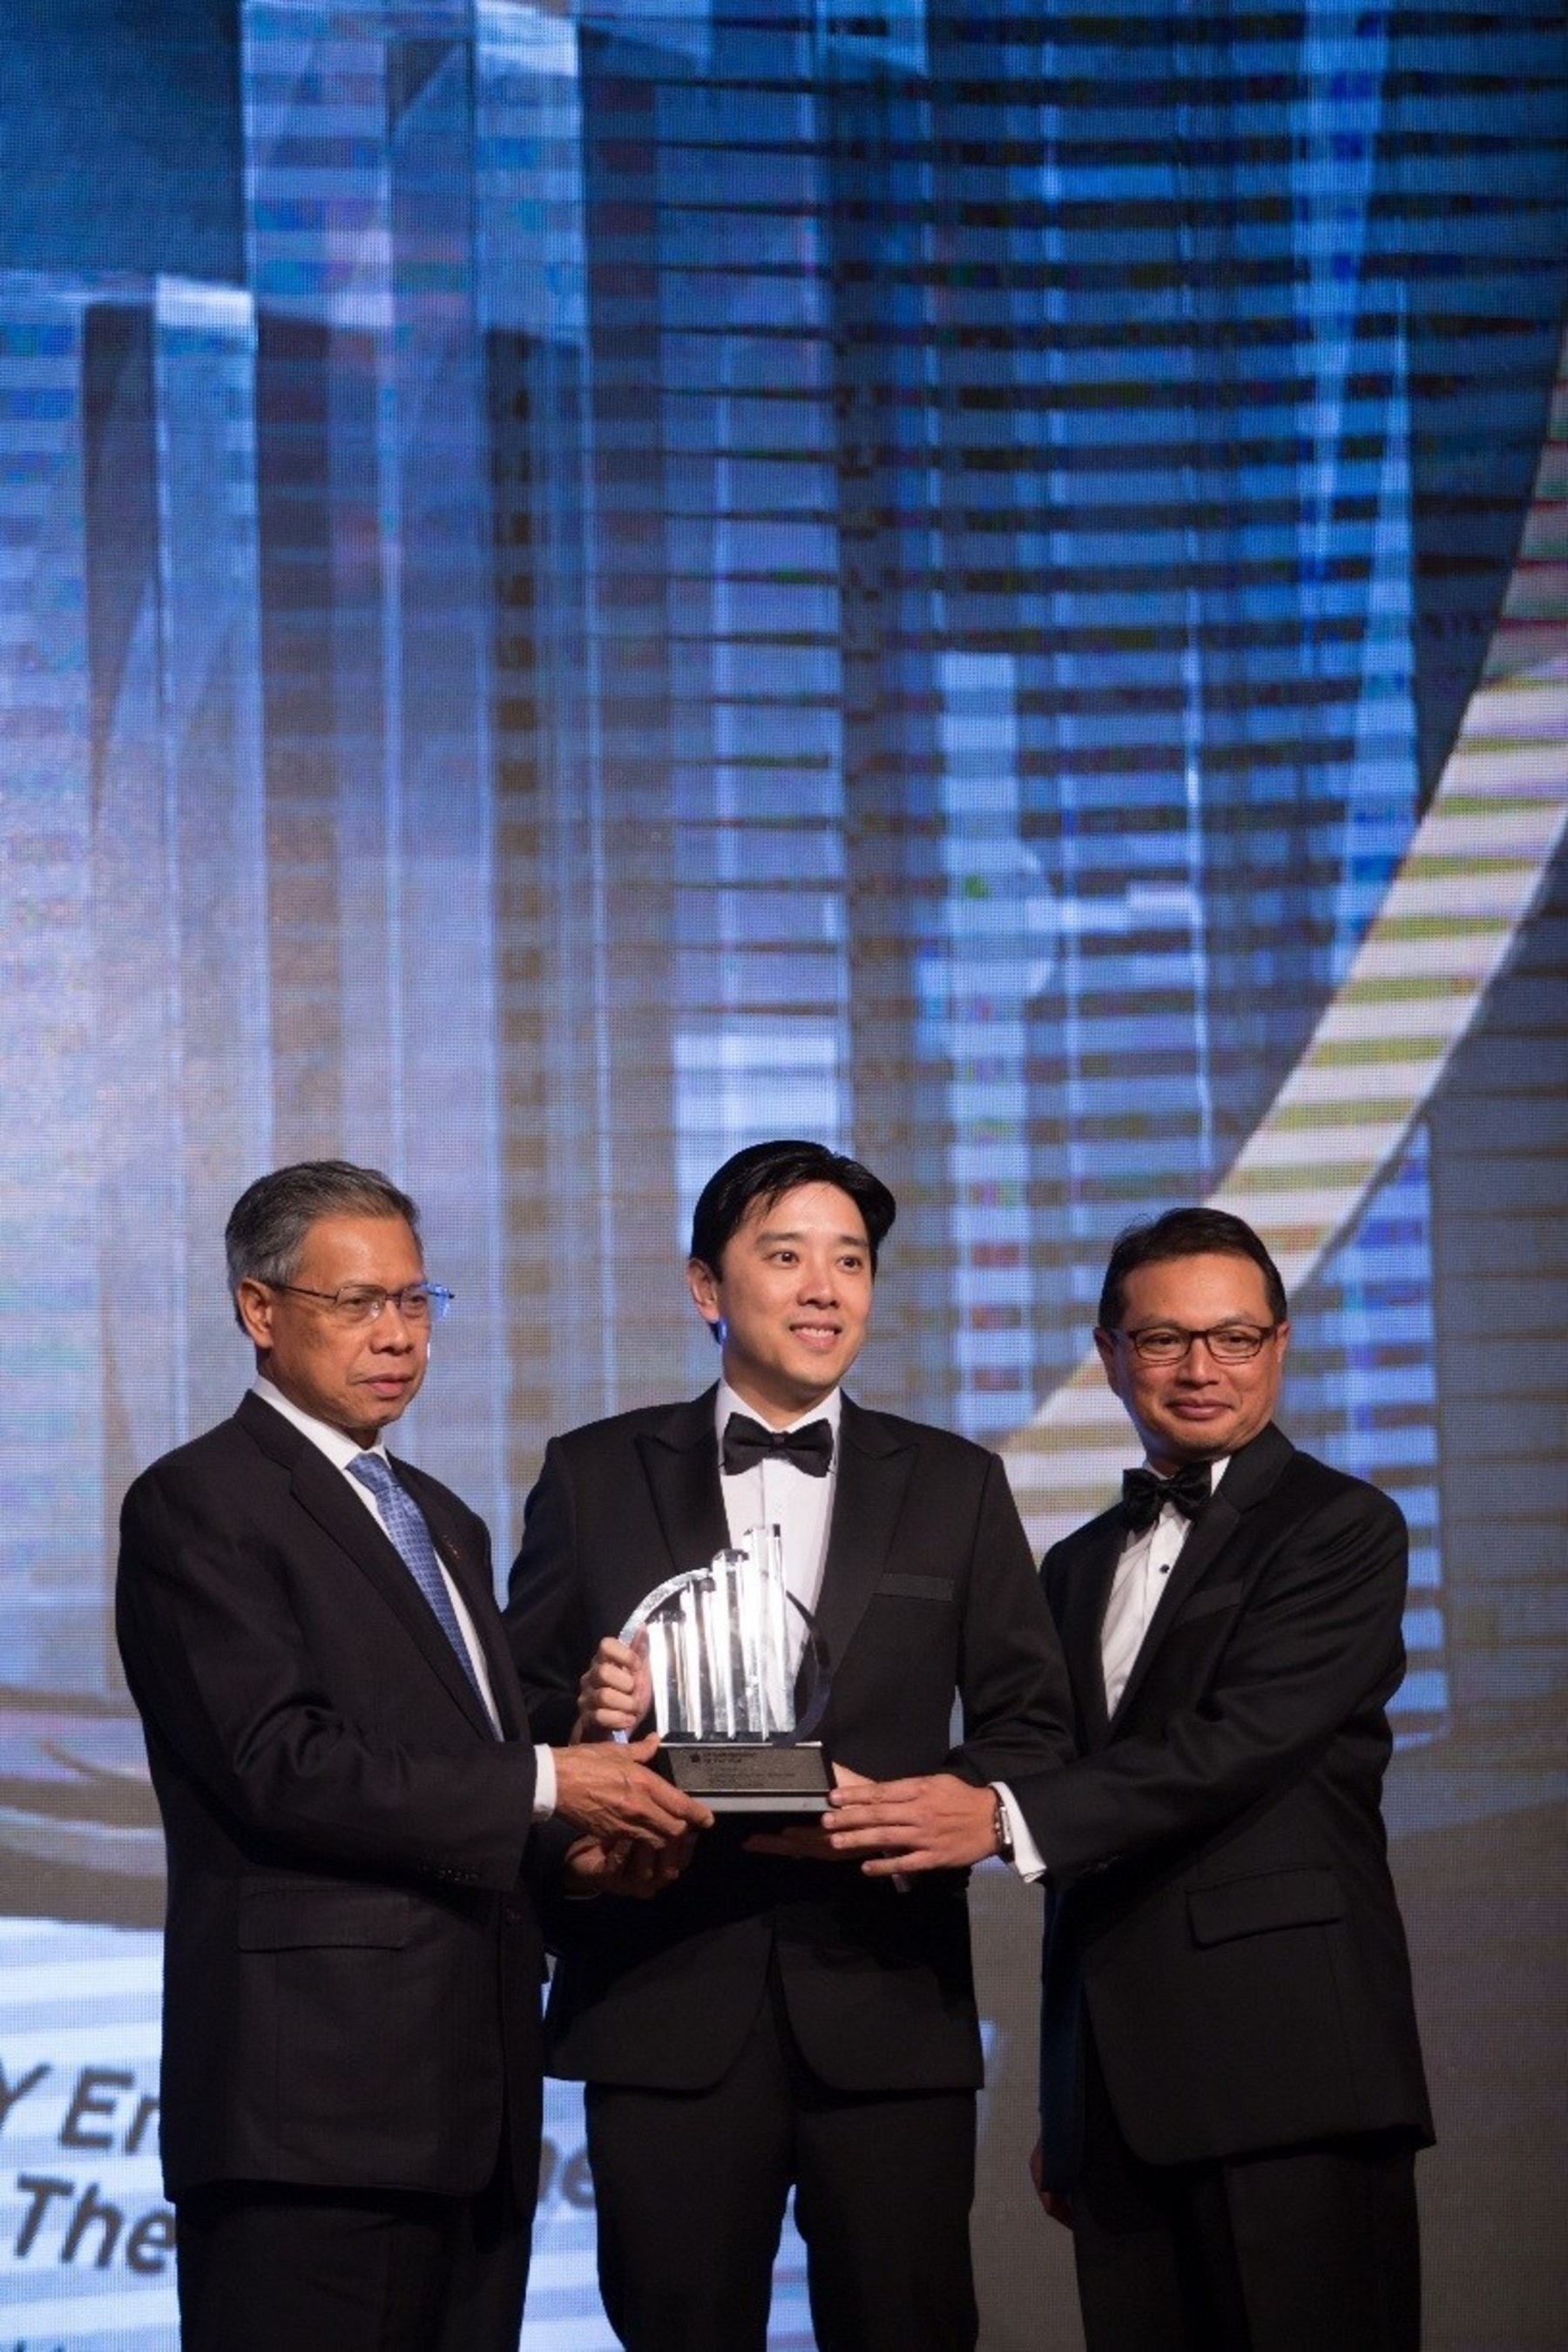 Ivan Teh, Fusionex Managing Director (Middle) receiving the EY Technology Entrepreneur of the year award from YB Dato' Sri Mustapa Mohamed, Minister of International Trade and Industry, (left), together with Dato' Abdul Rauf Rashid, Ernst & Young Country Managing Partner (right) at the prestigious 2014 Ernst & Young Entrepreneur of the year gala dinner held at the Majestic, Kuala Lumpur.